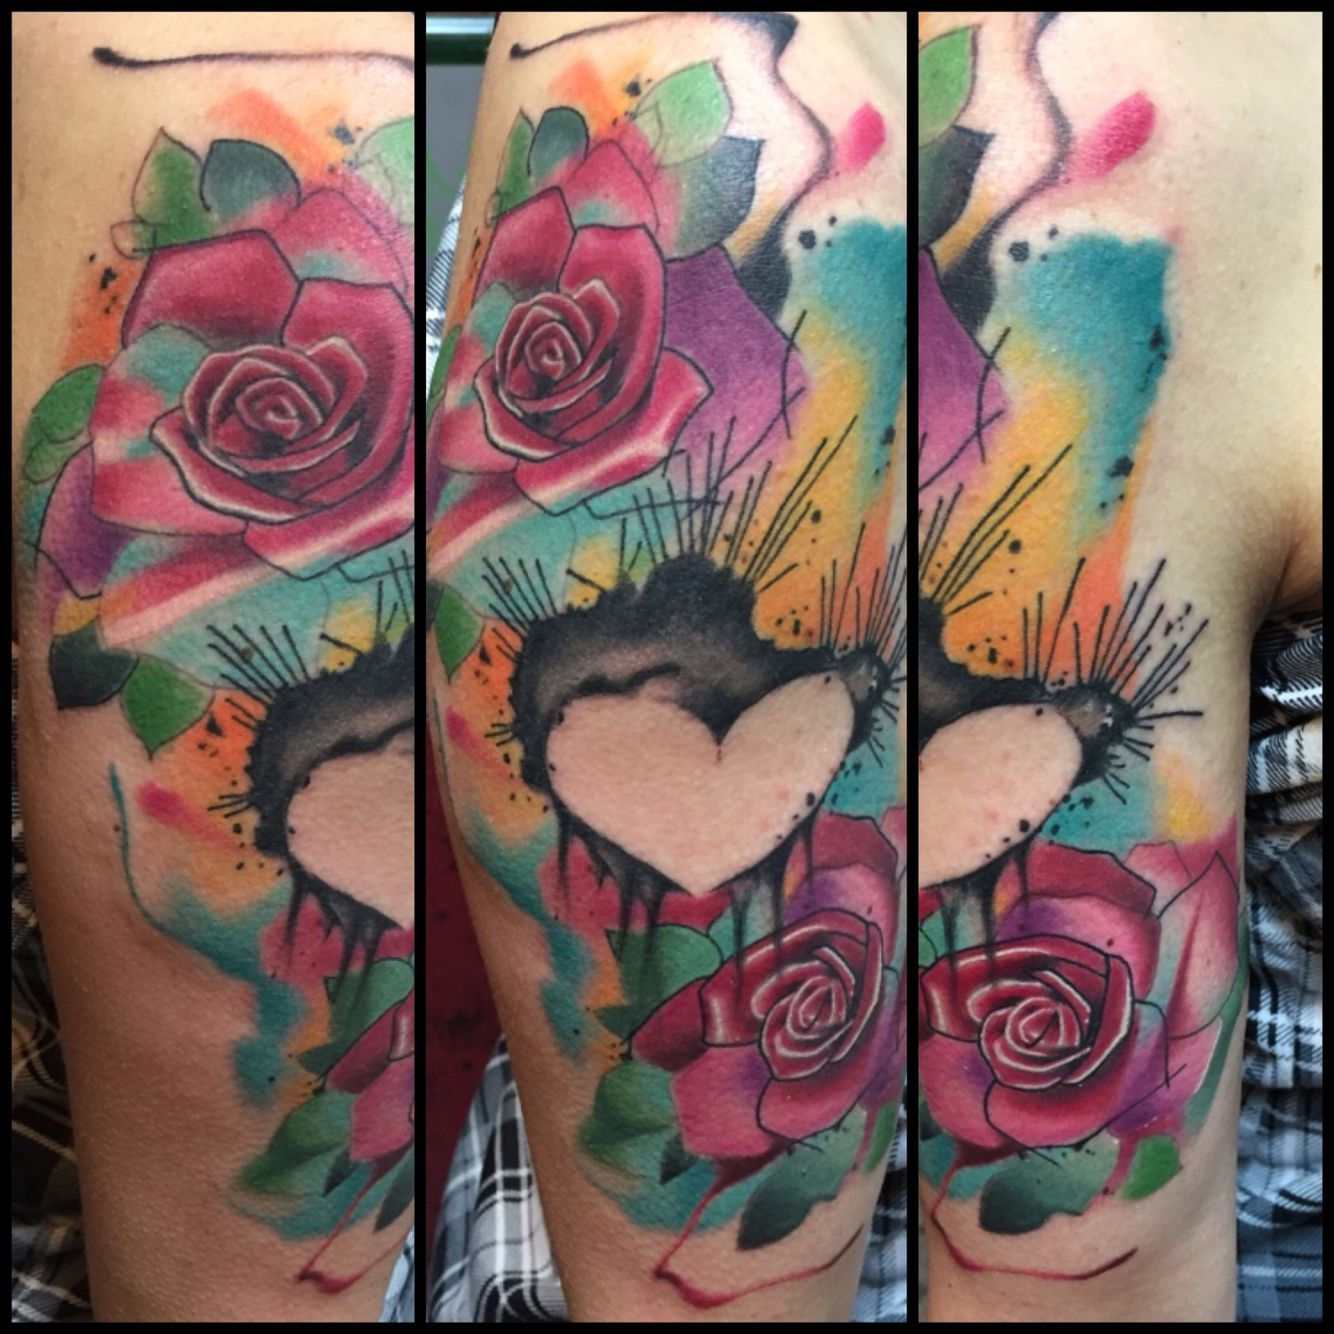 Watercolor tattoo artists in houston texas - Watercolor Tattoo By Elijah Nguyen At Skin Stories Tattoo In Houston Tx Add Me On Instagram